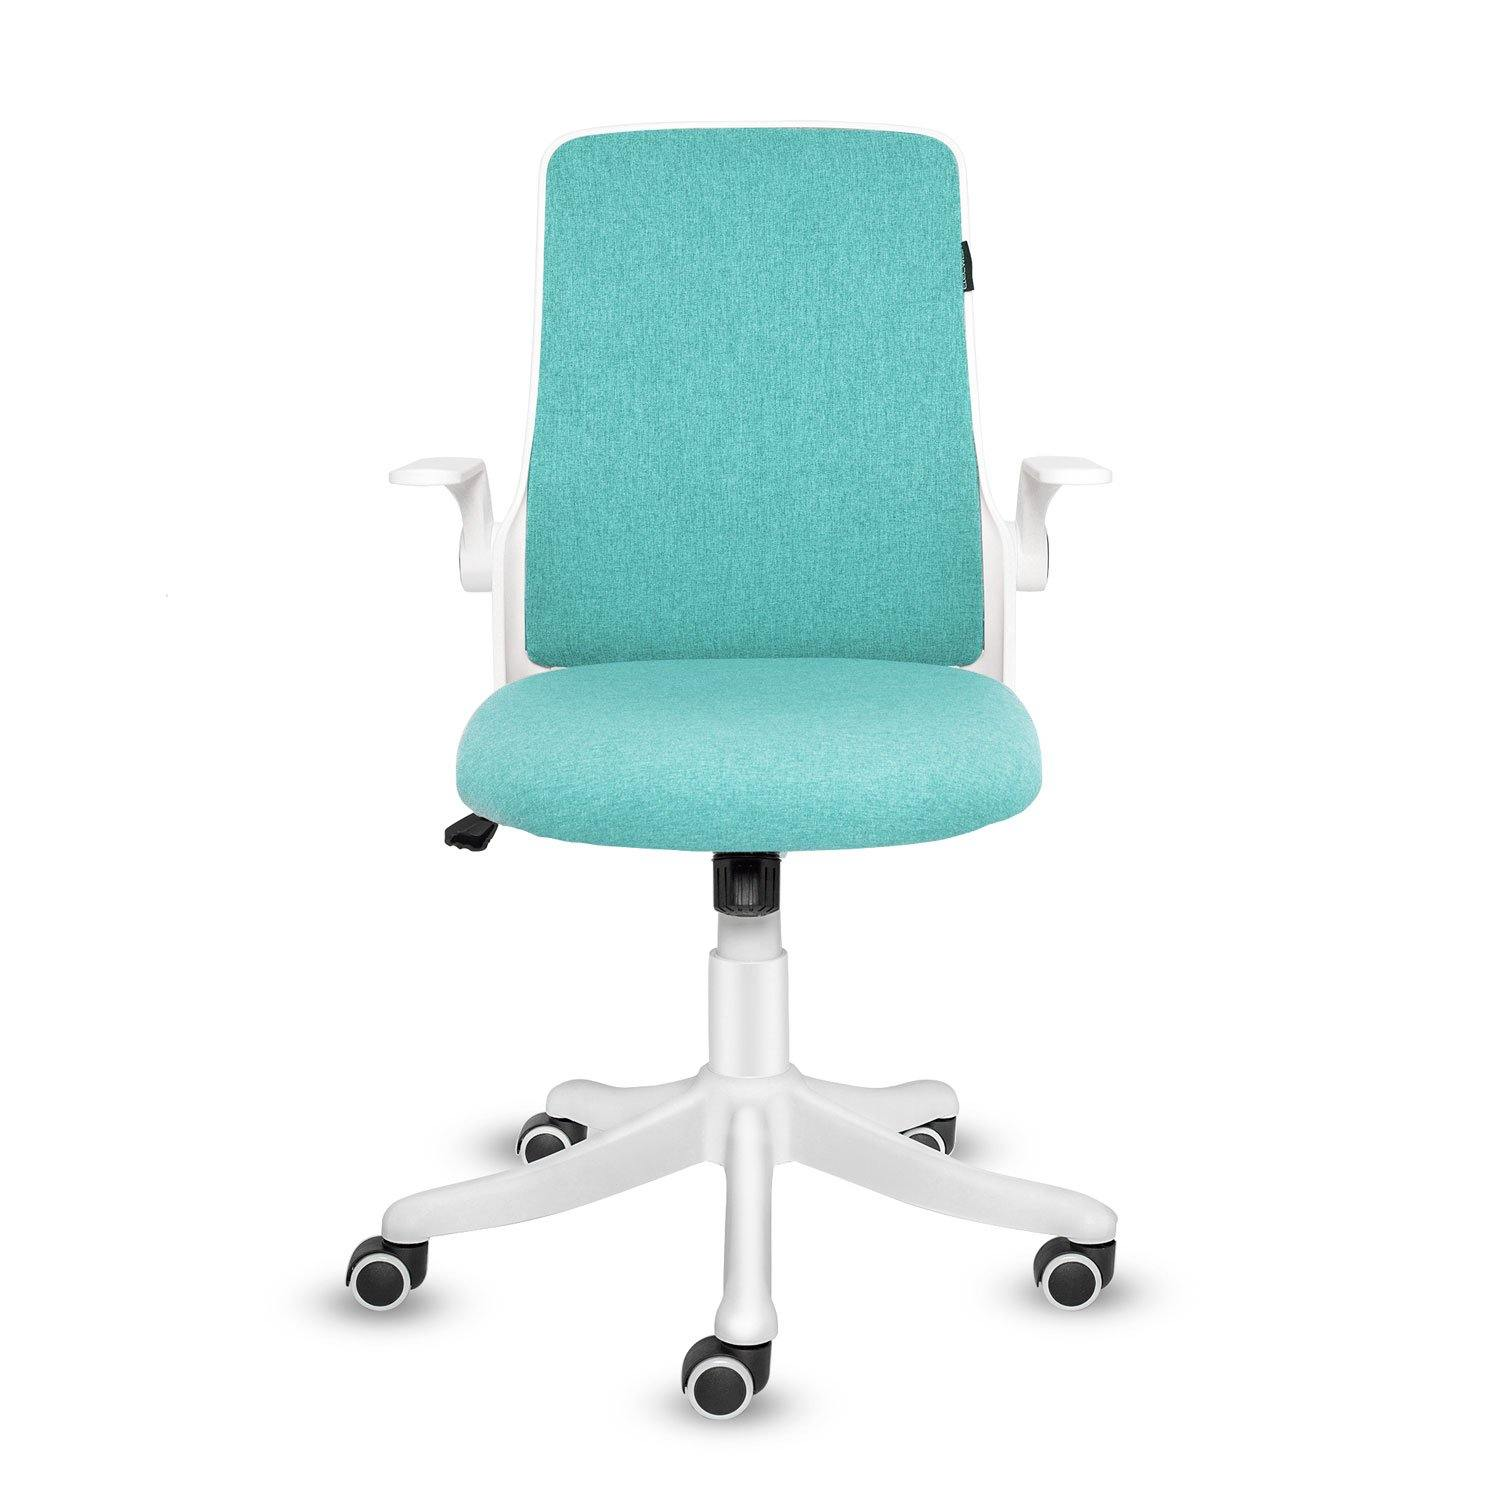 FULLWATT Seat Adjustable with Flip-up Armrests Office Chair